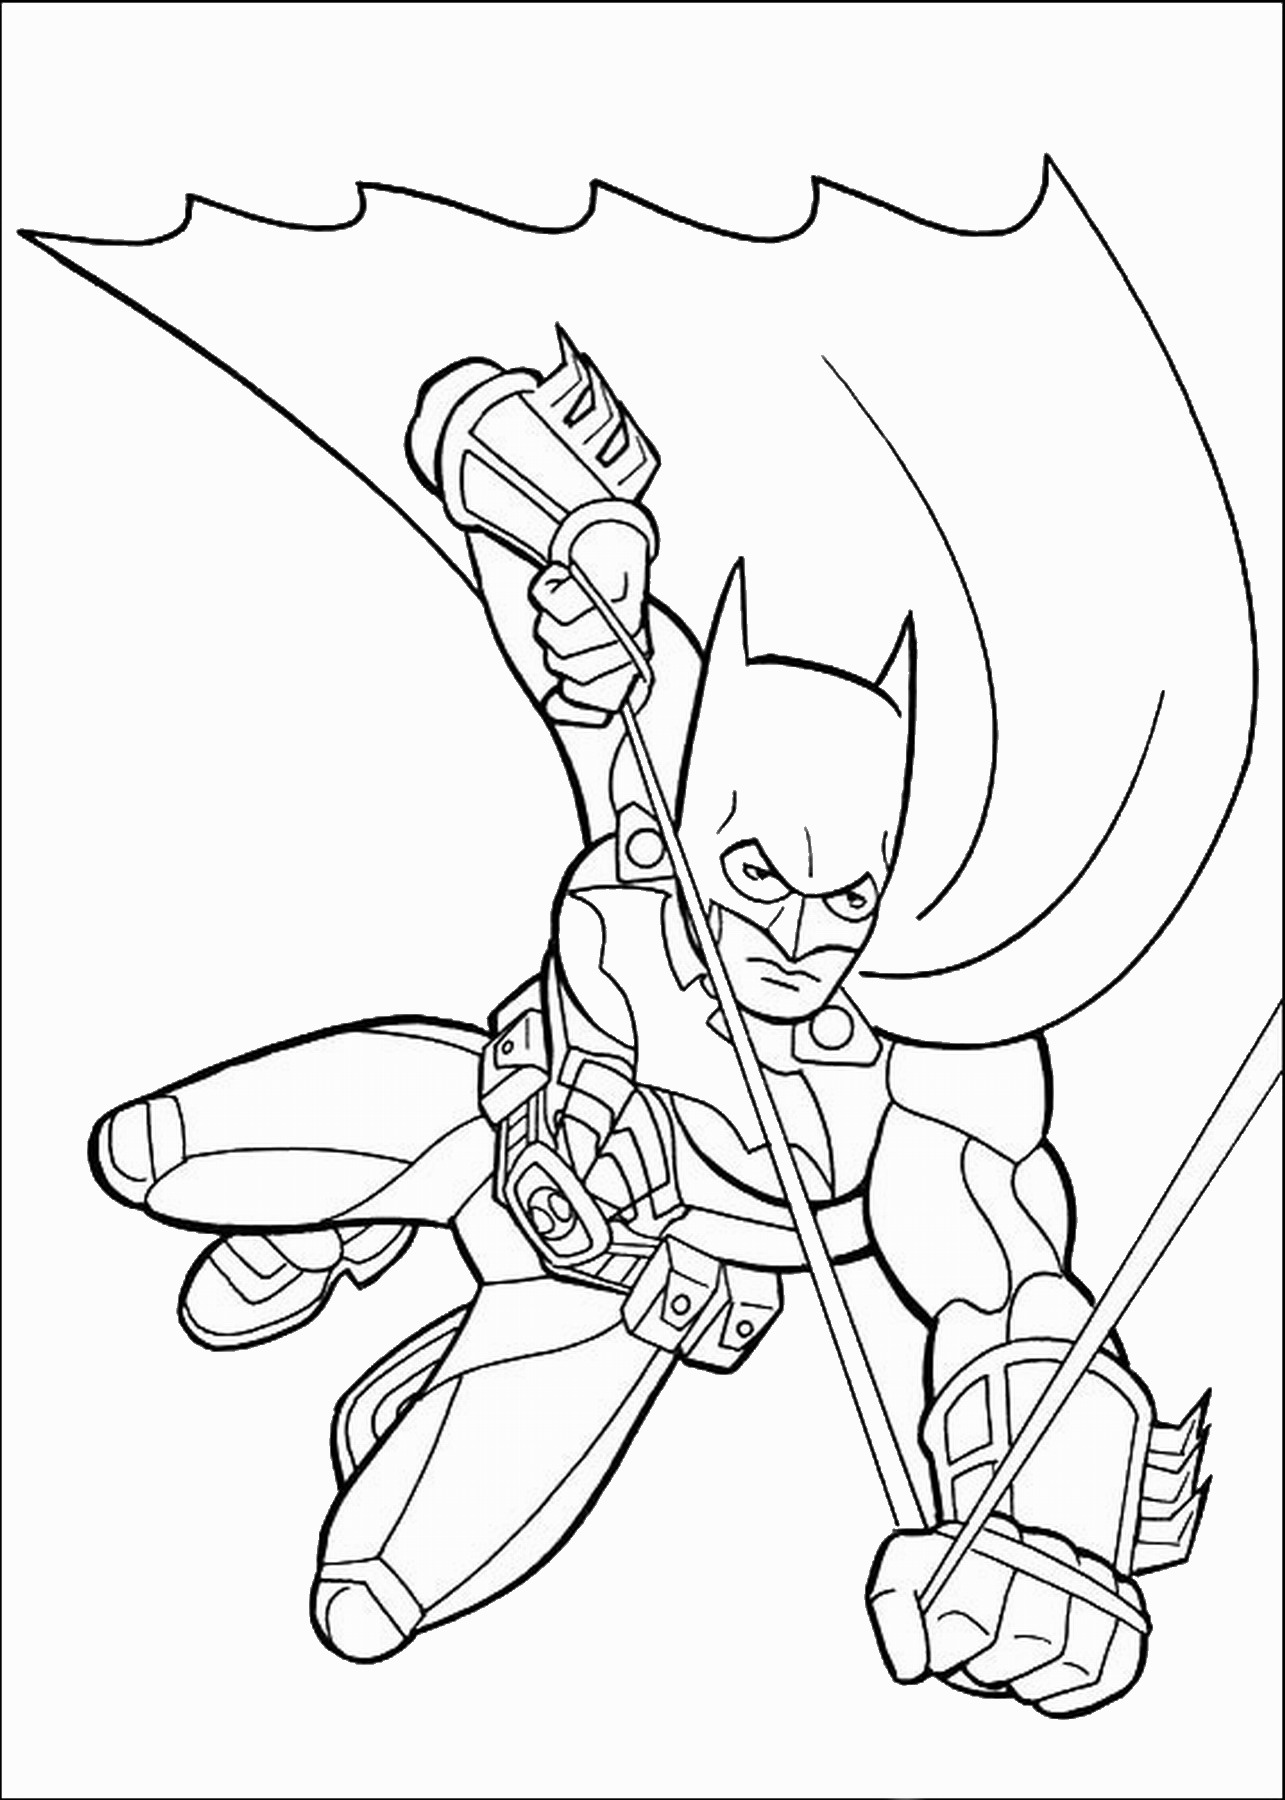 batmancoloring pages batmancoloring pages batmancoloring pages